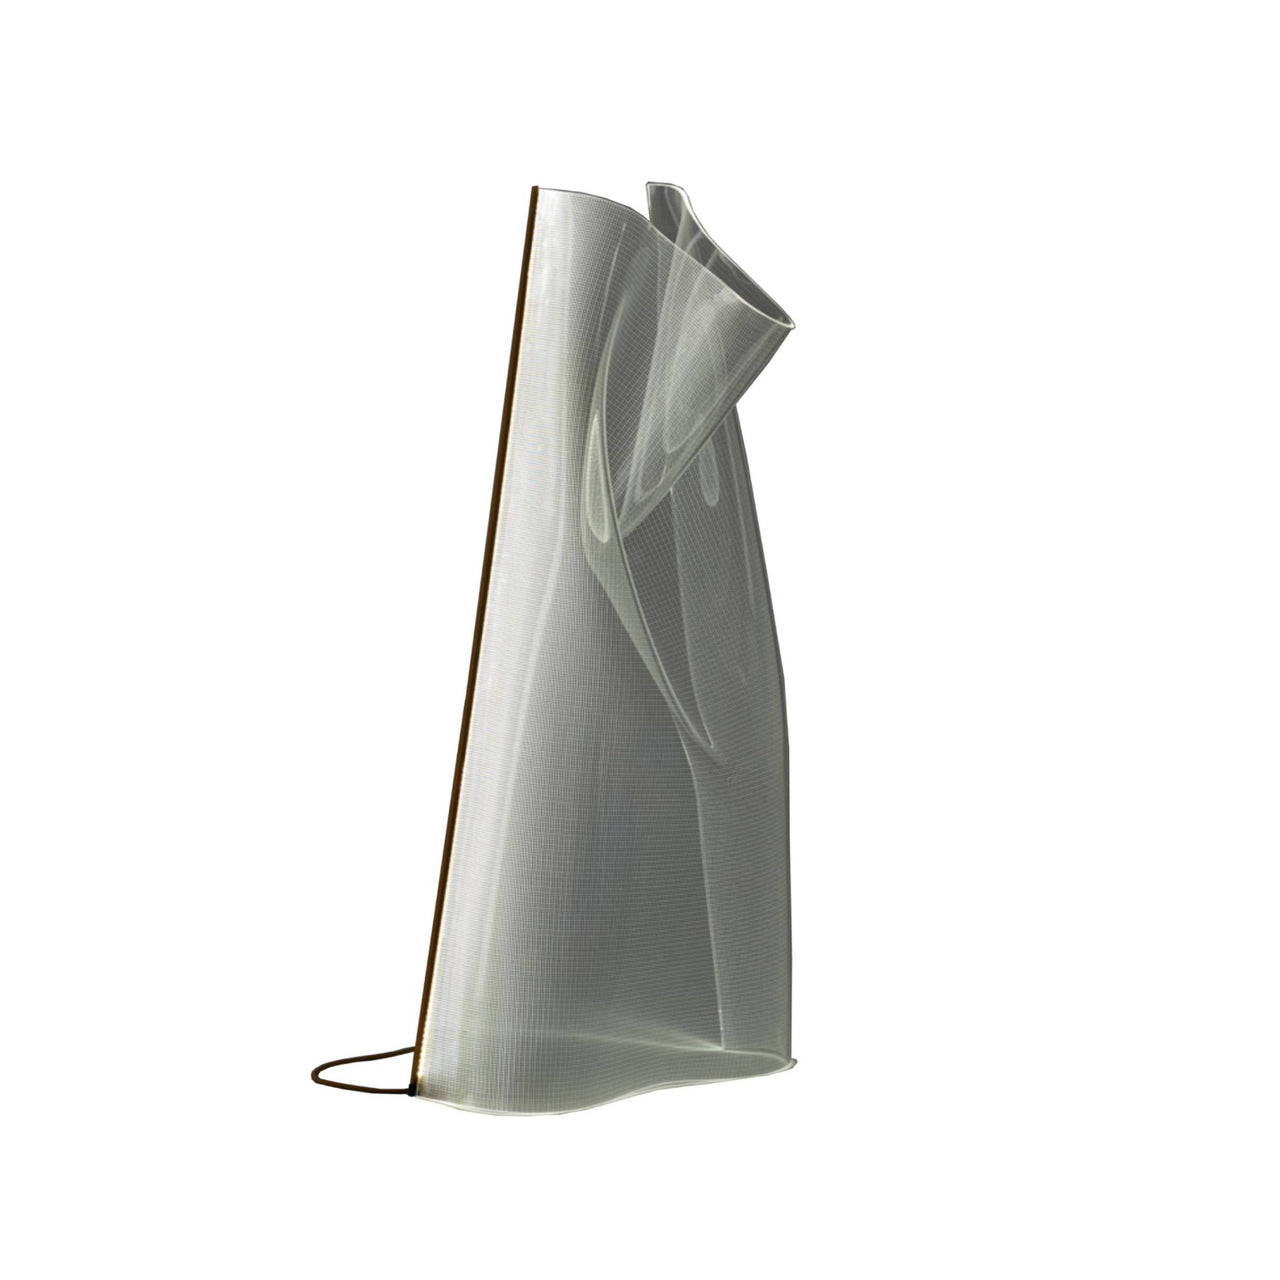 Gweilo Han Floor Lamp: Large - 59